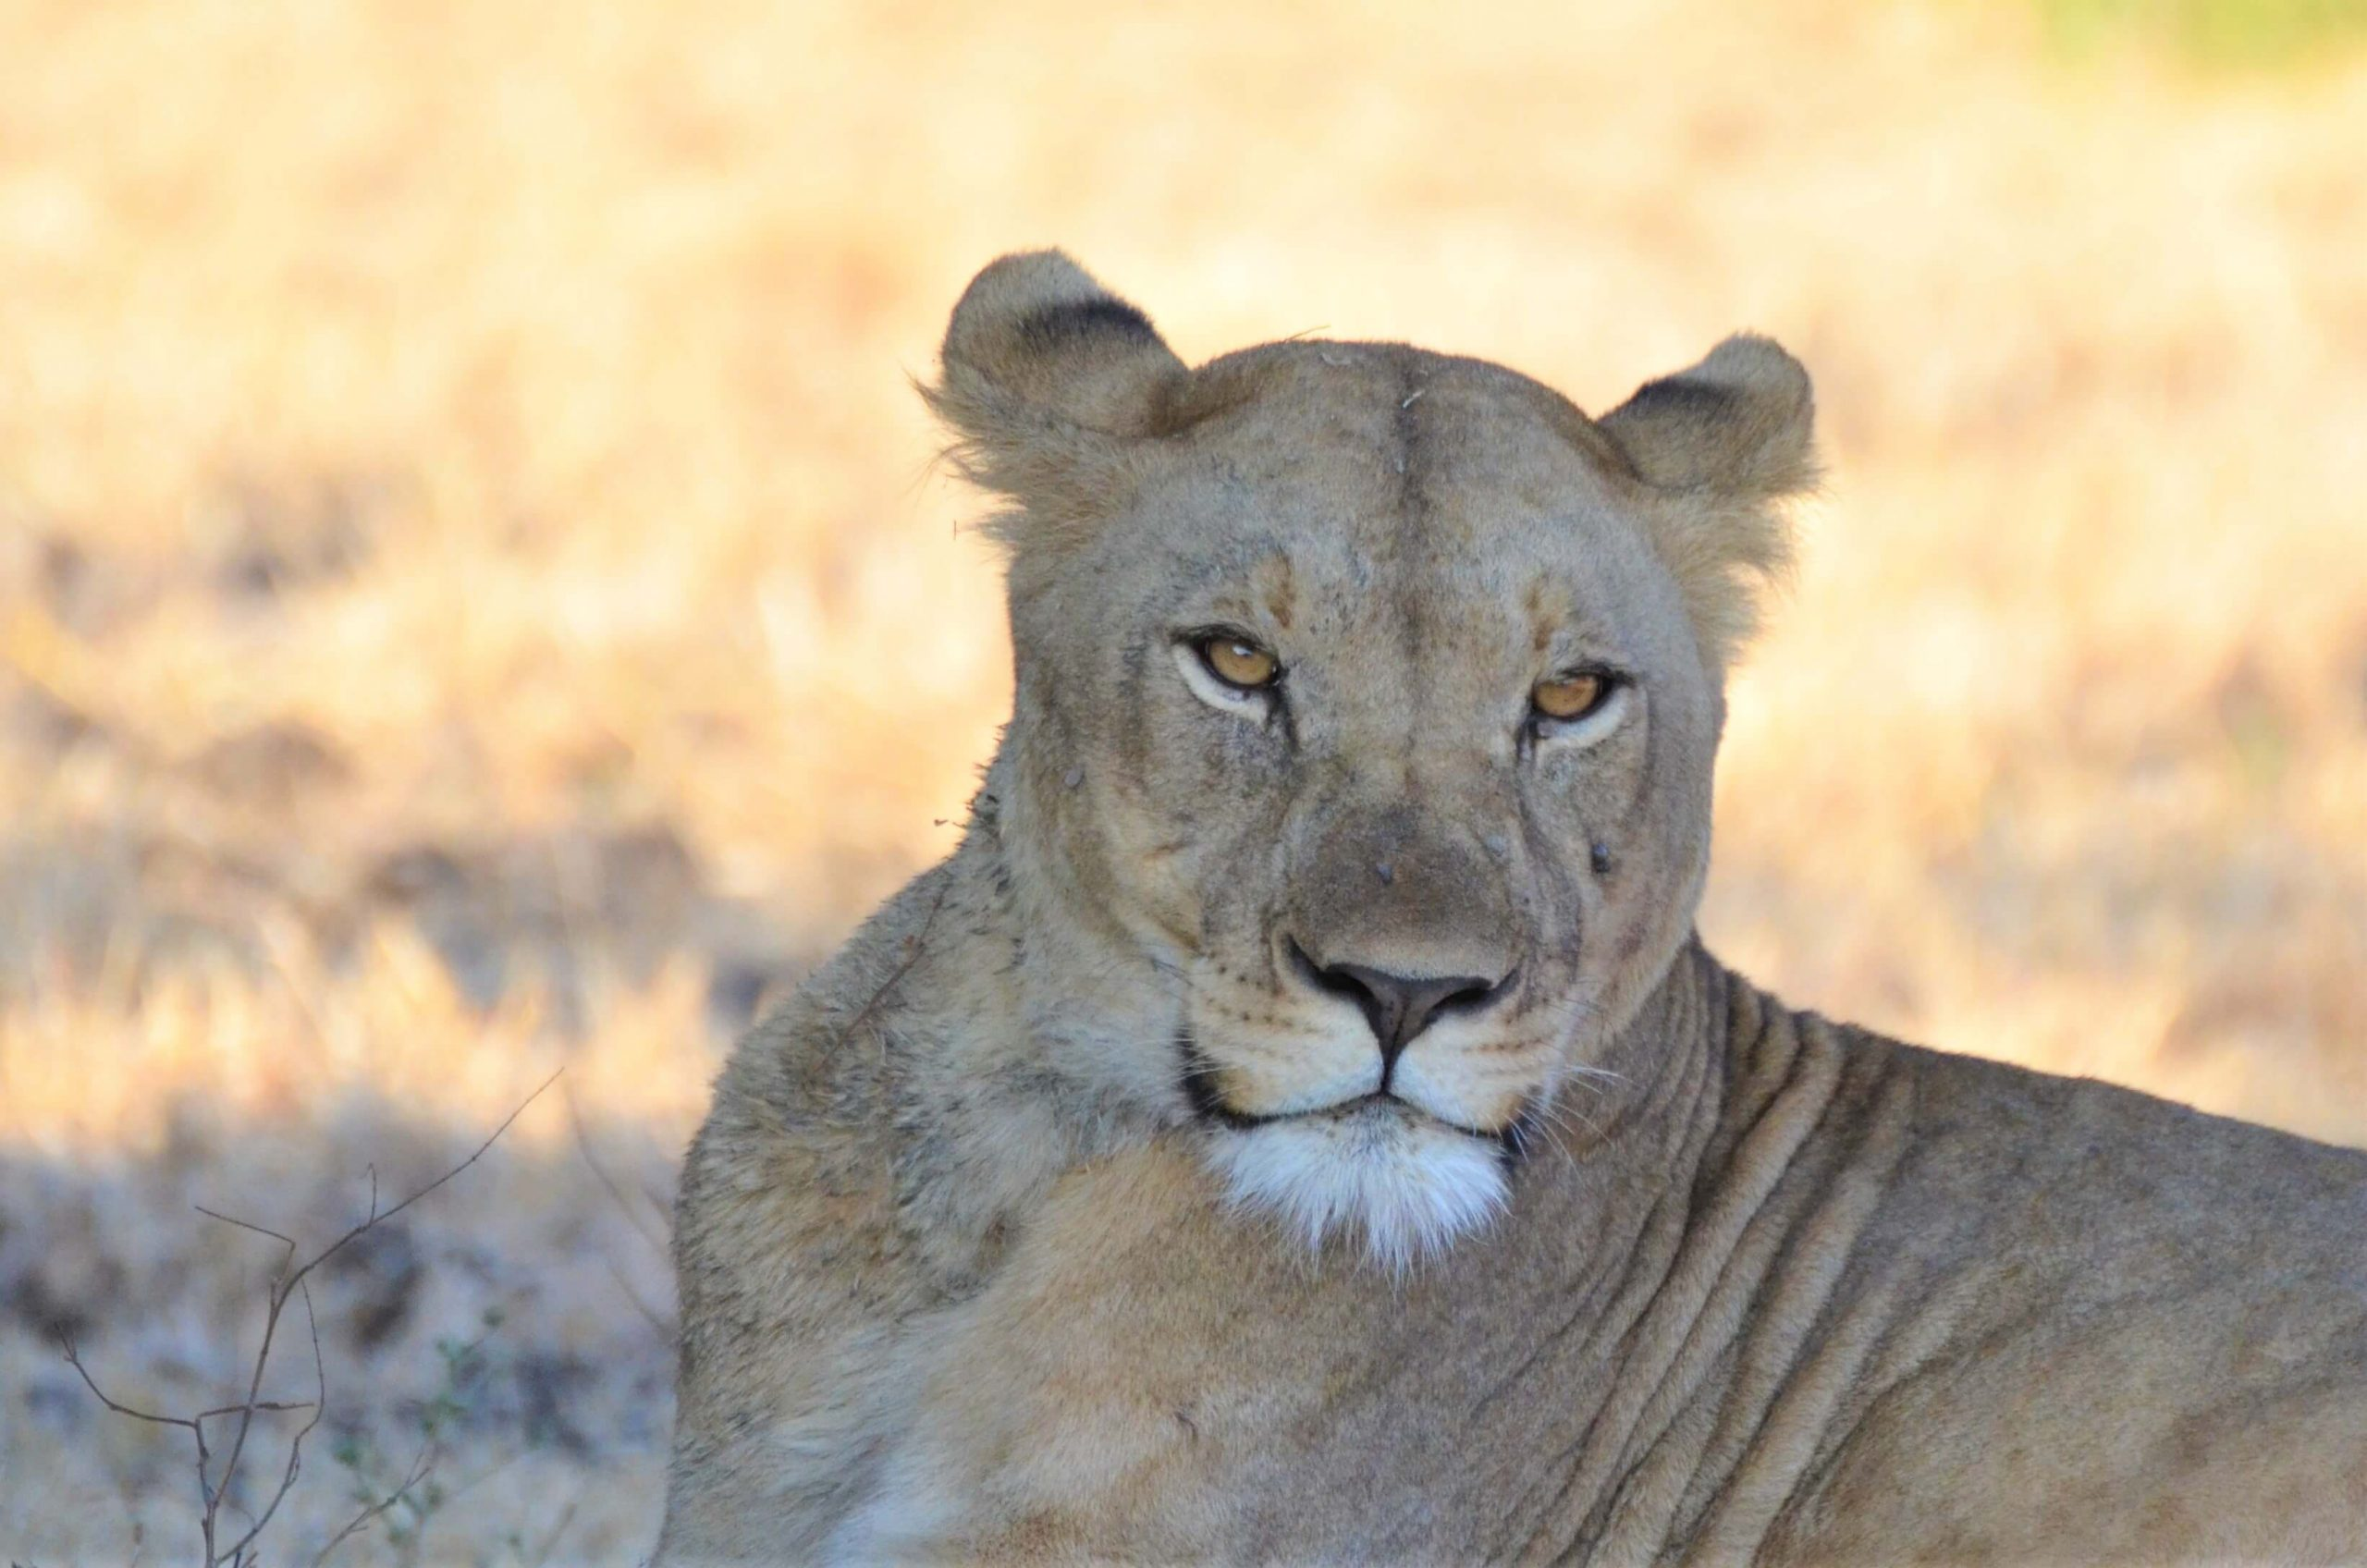 Lioness in Malawi